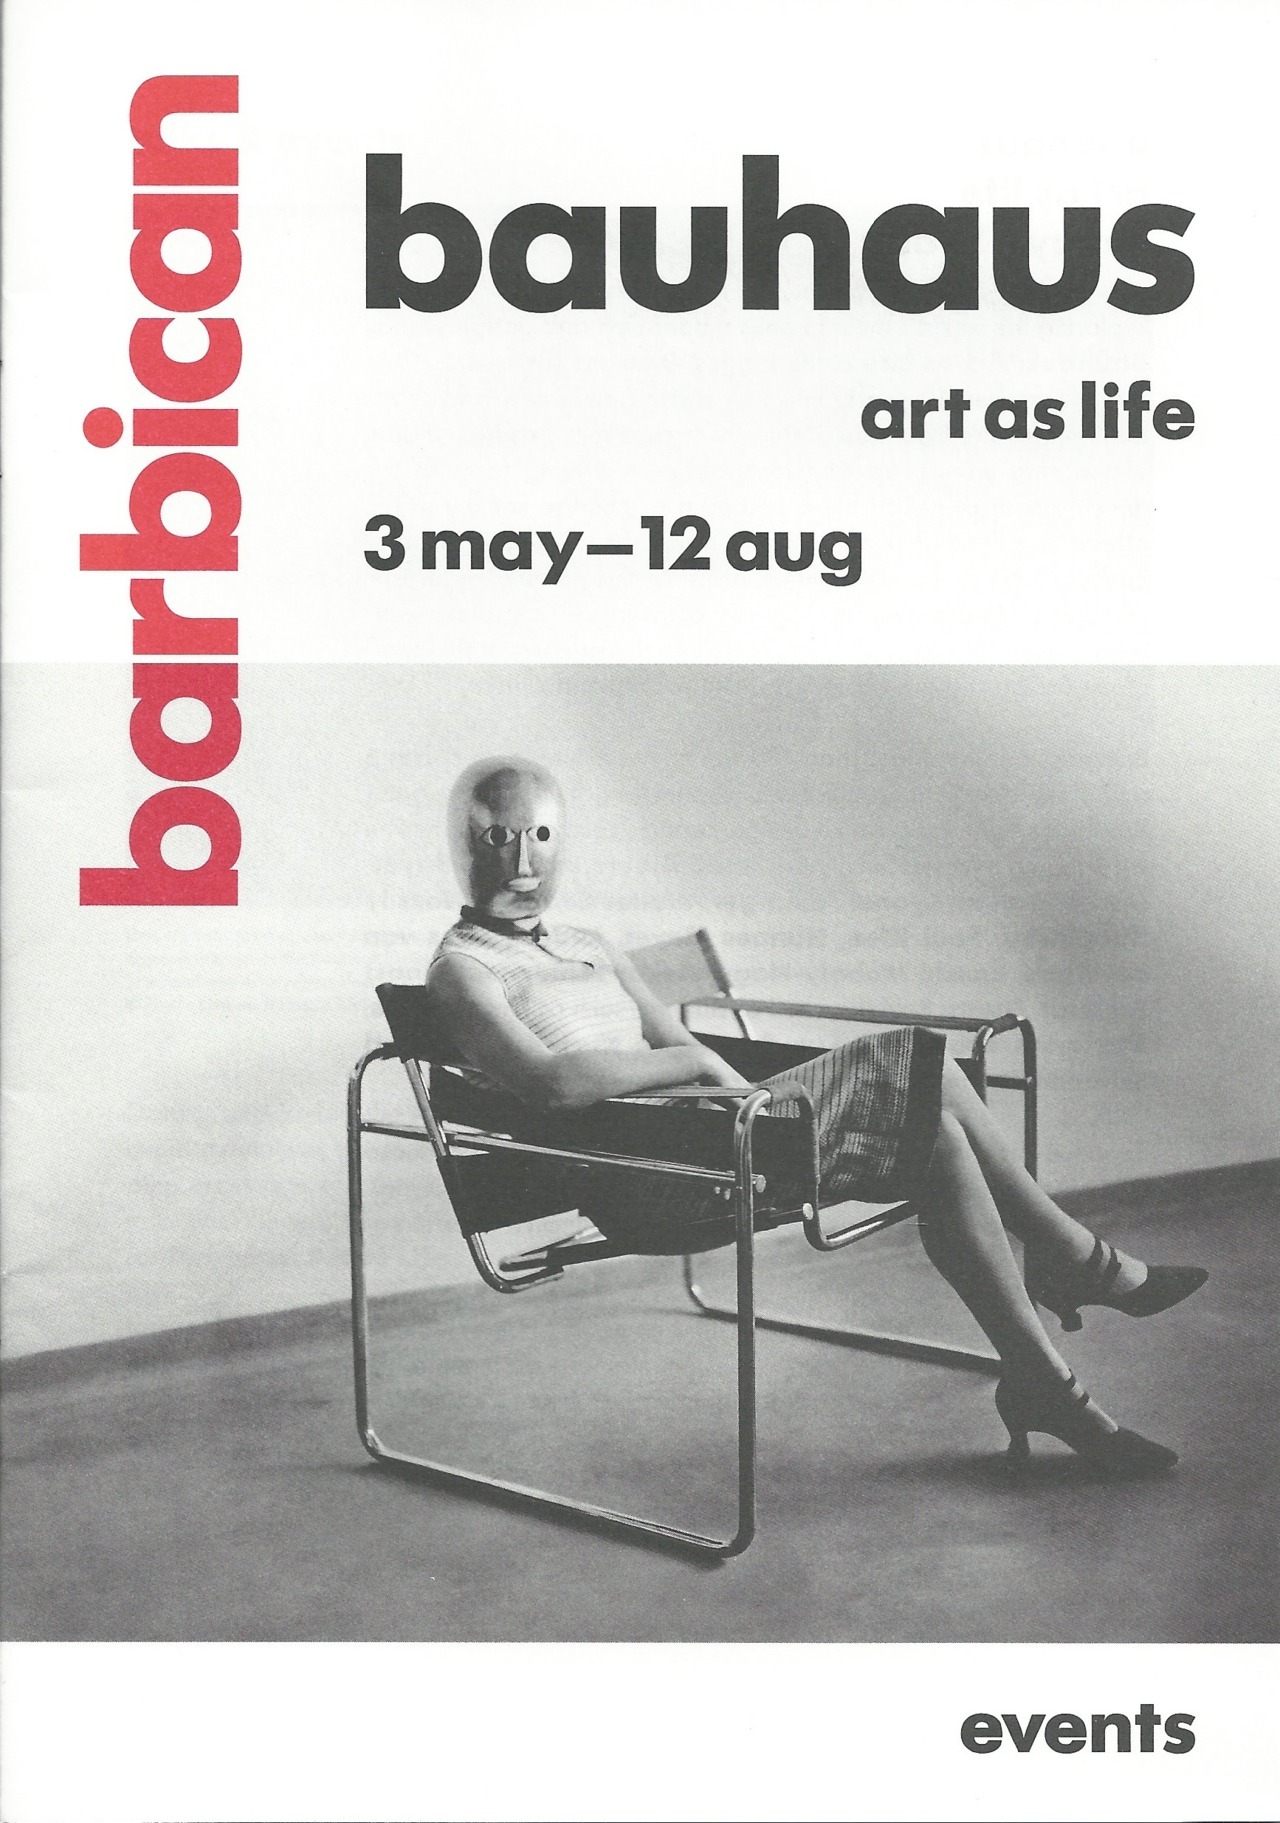 Bauhaus art as life exhibition at the Barbican.  information Booklets front page.